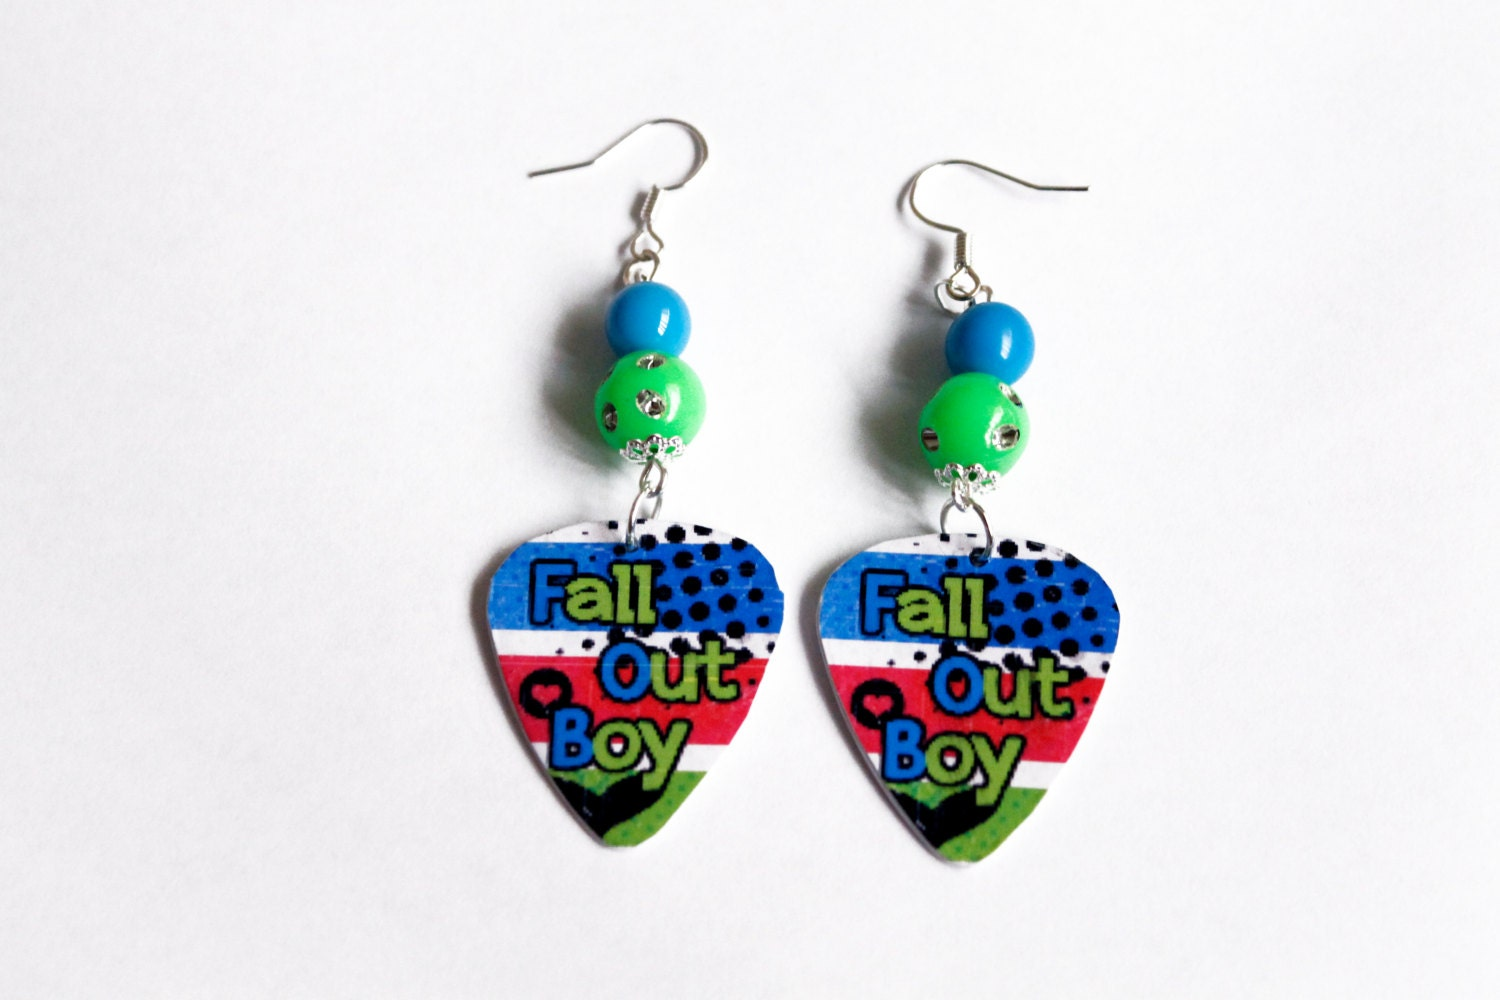 fall out boy guitar earrings by hellcatboutique on etsy